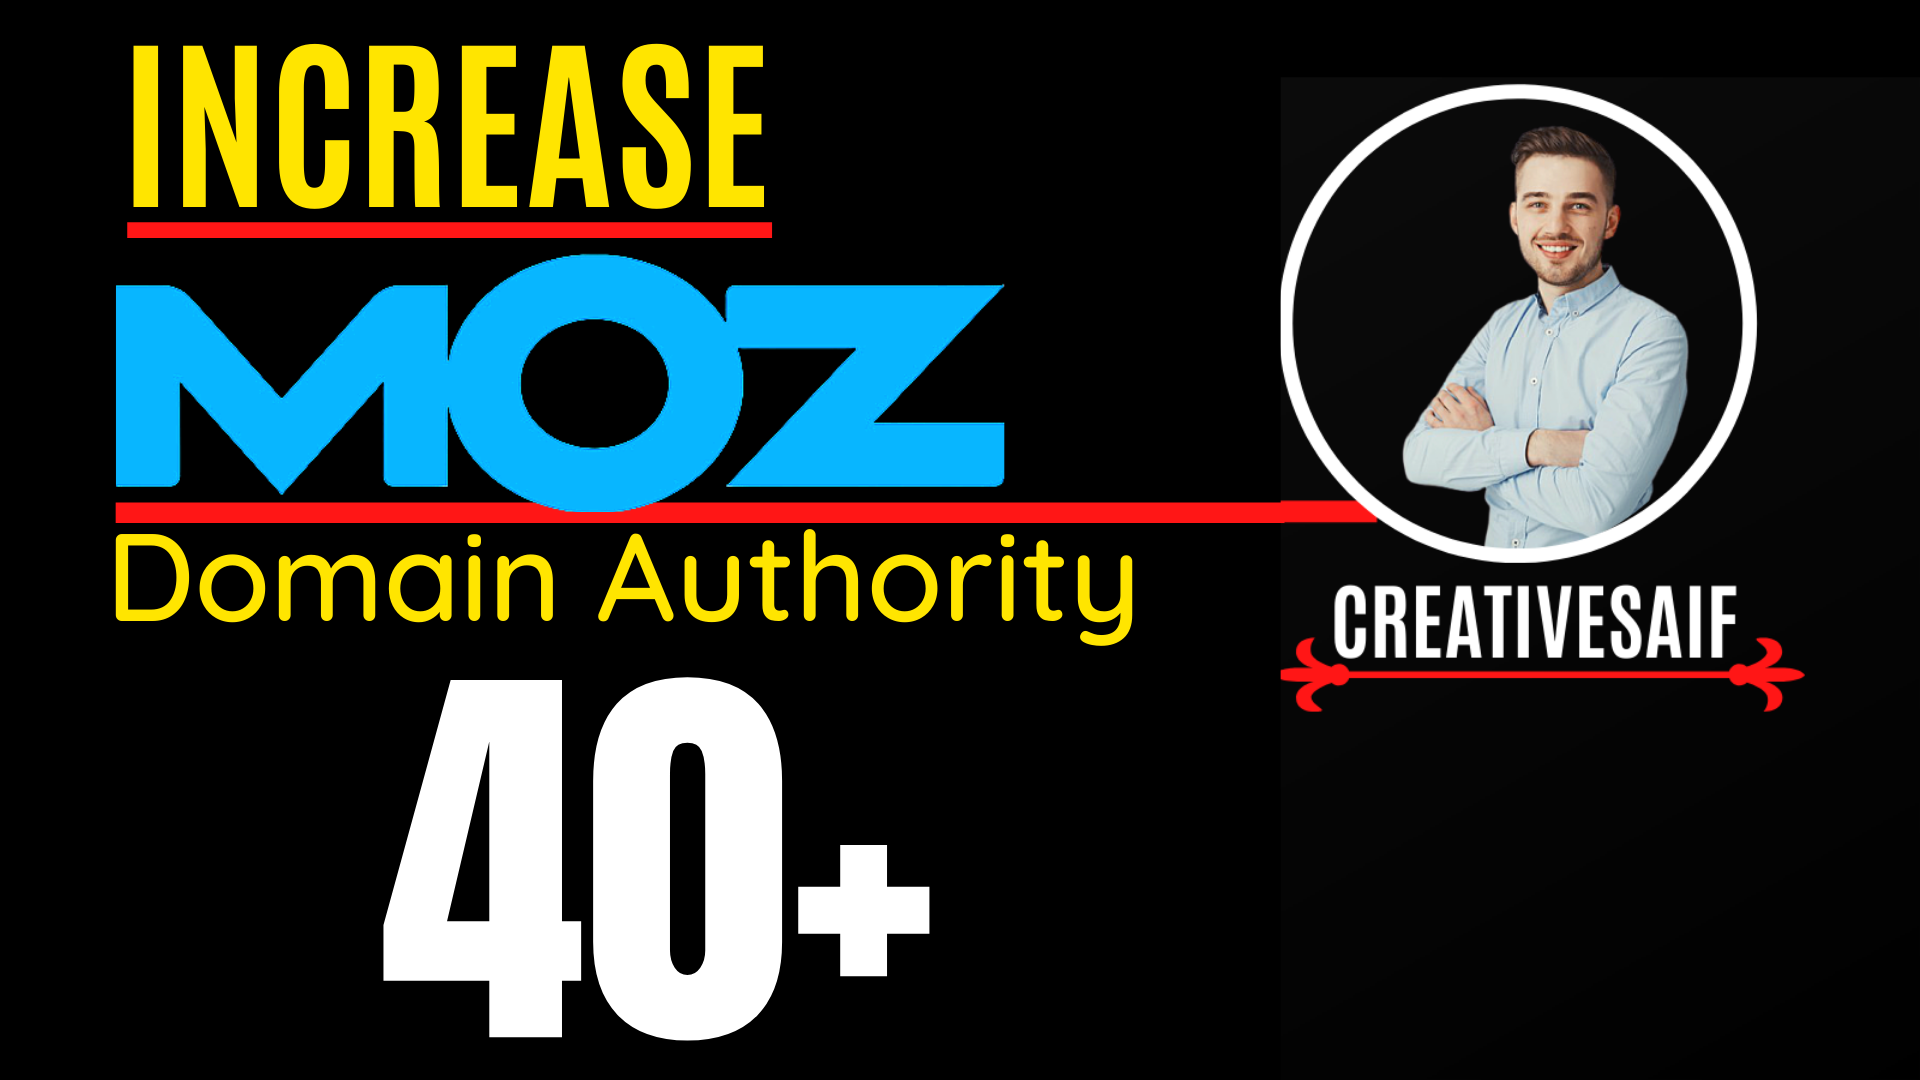 I will increase moz domain authority,  increase moz da 0 to 40 plus